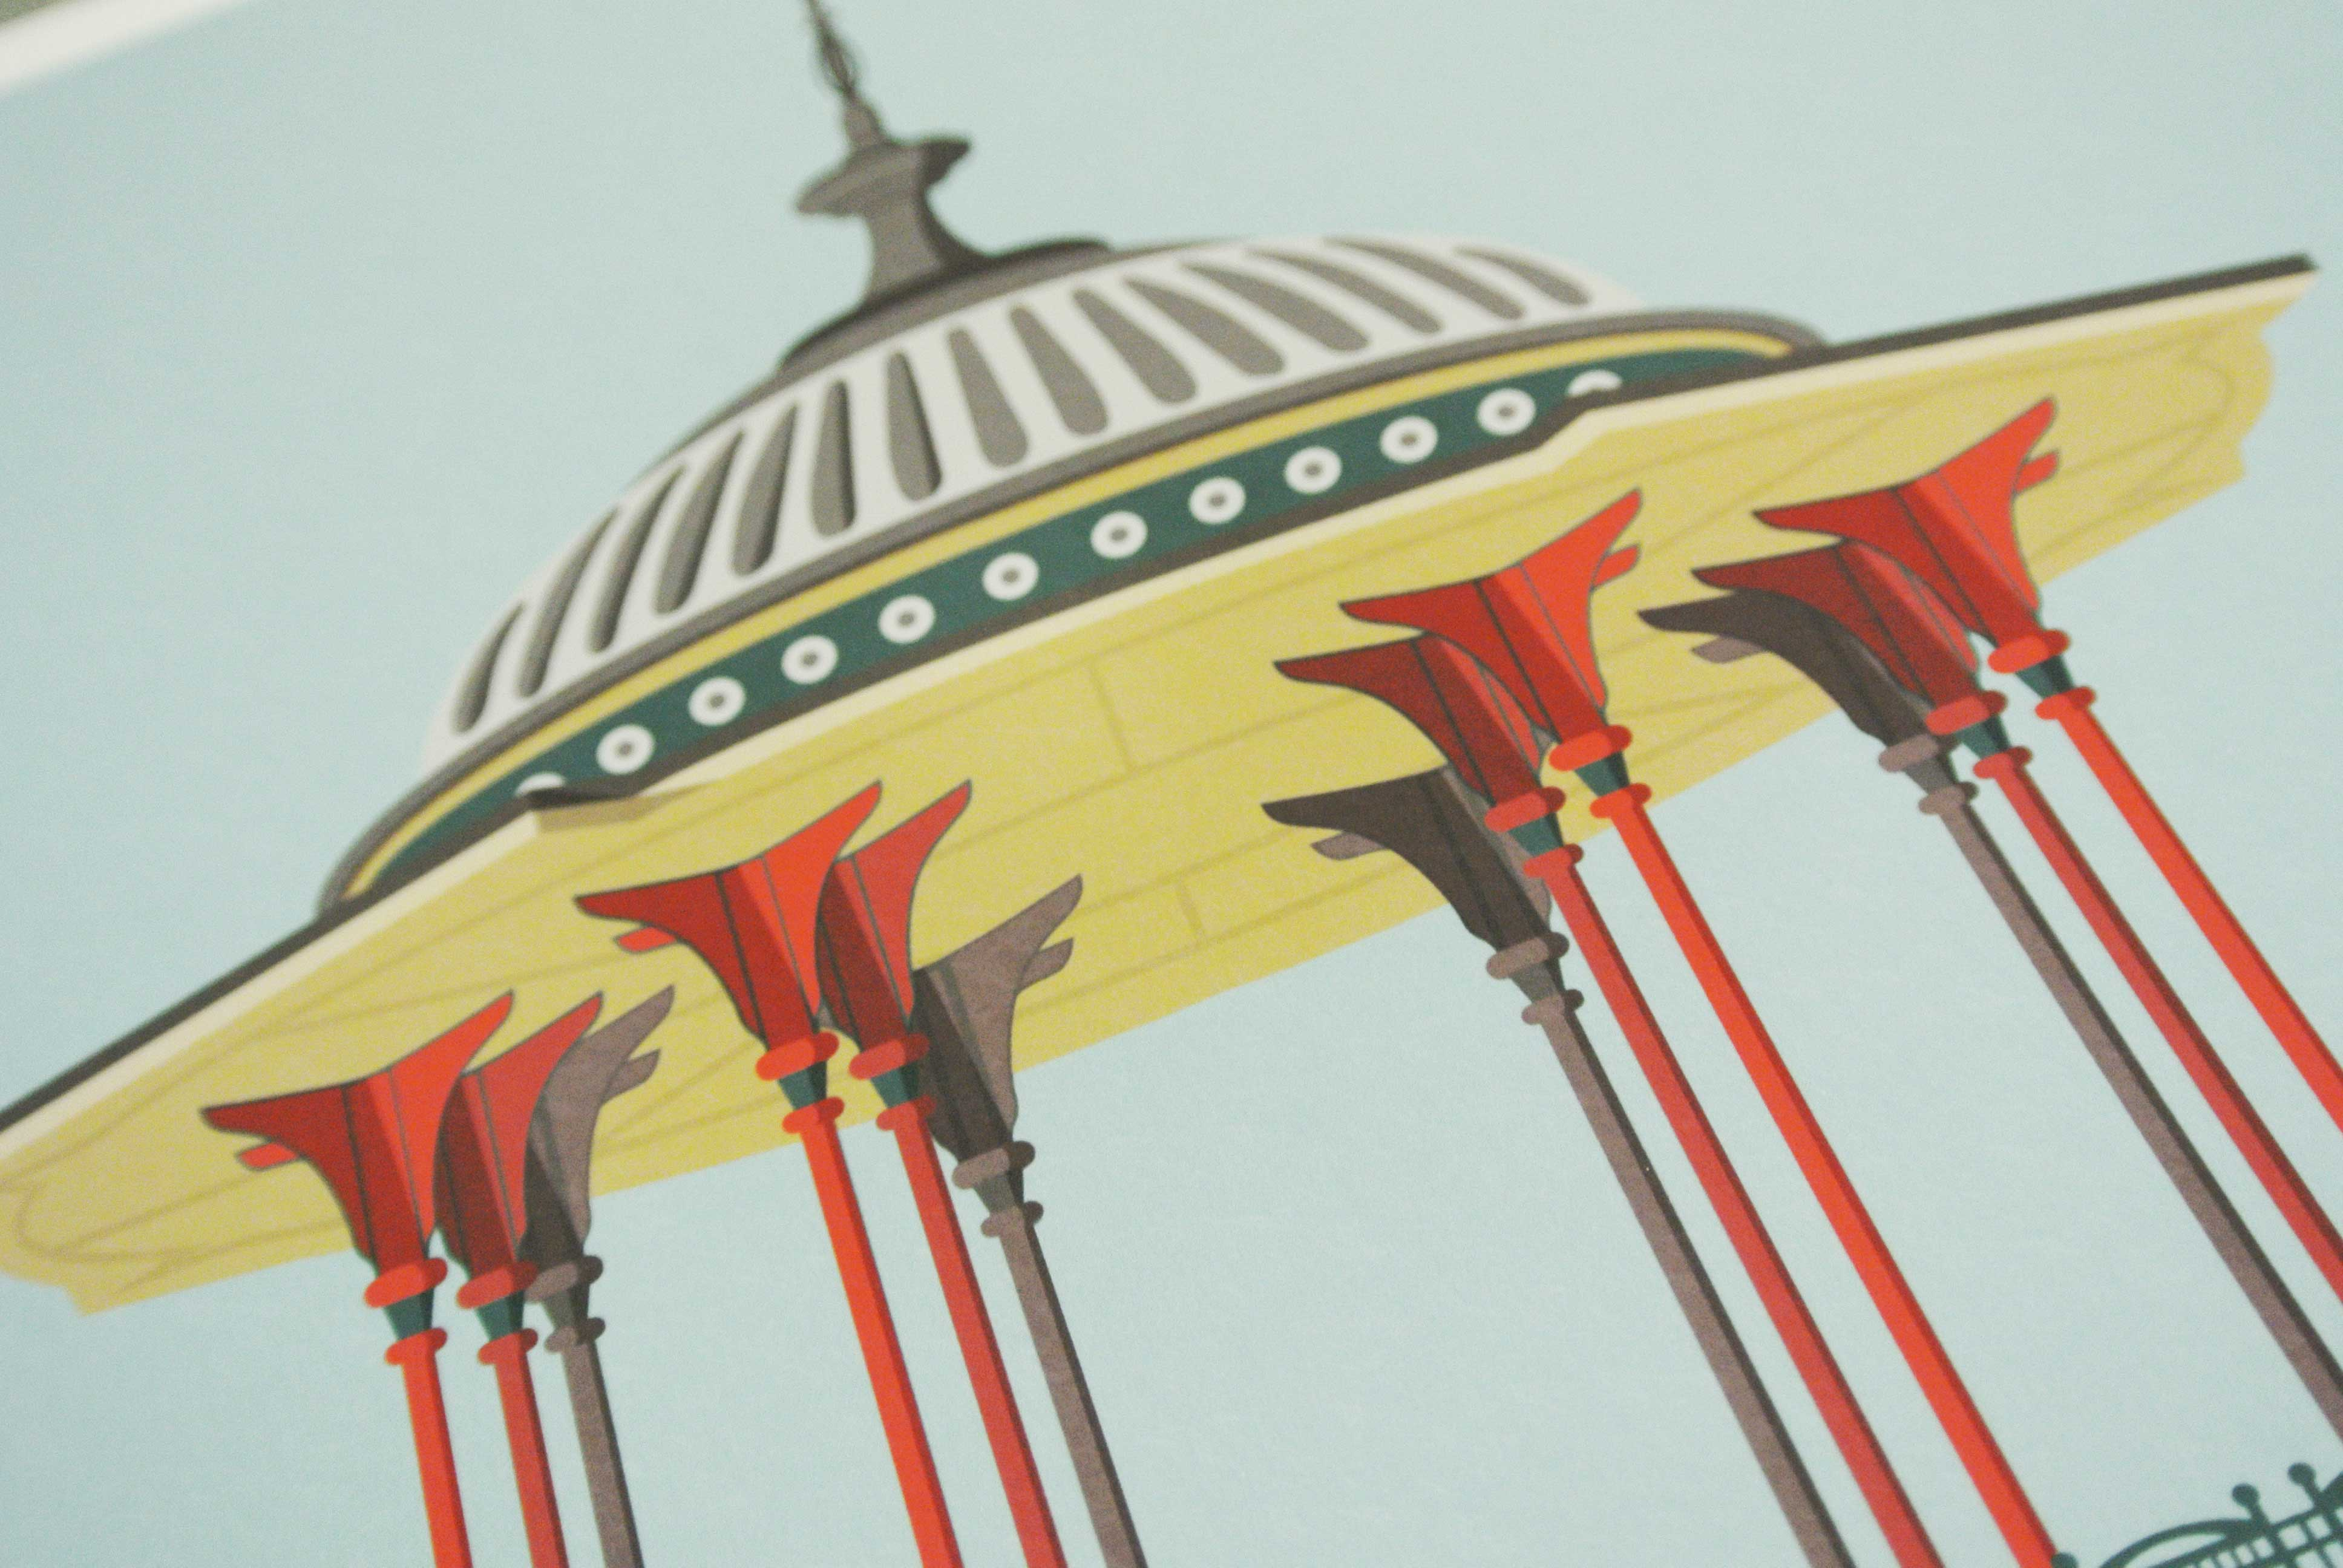 Place in Print South London Prints Clapham Common Bandstand Art Print Photo